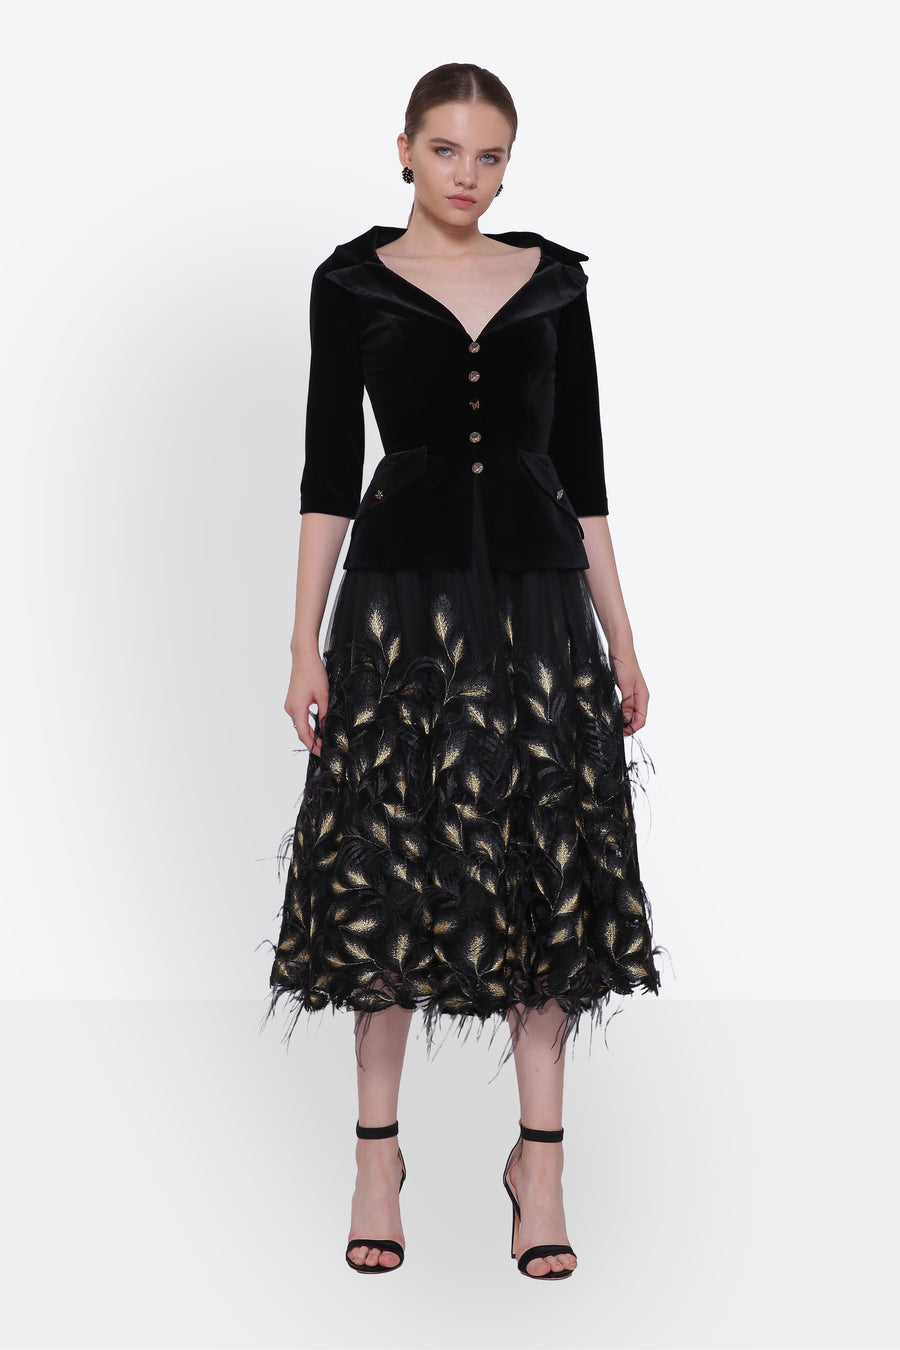 Black & Gold Feathered Evening Dress